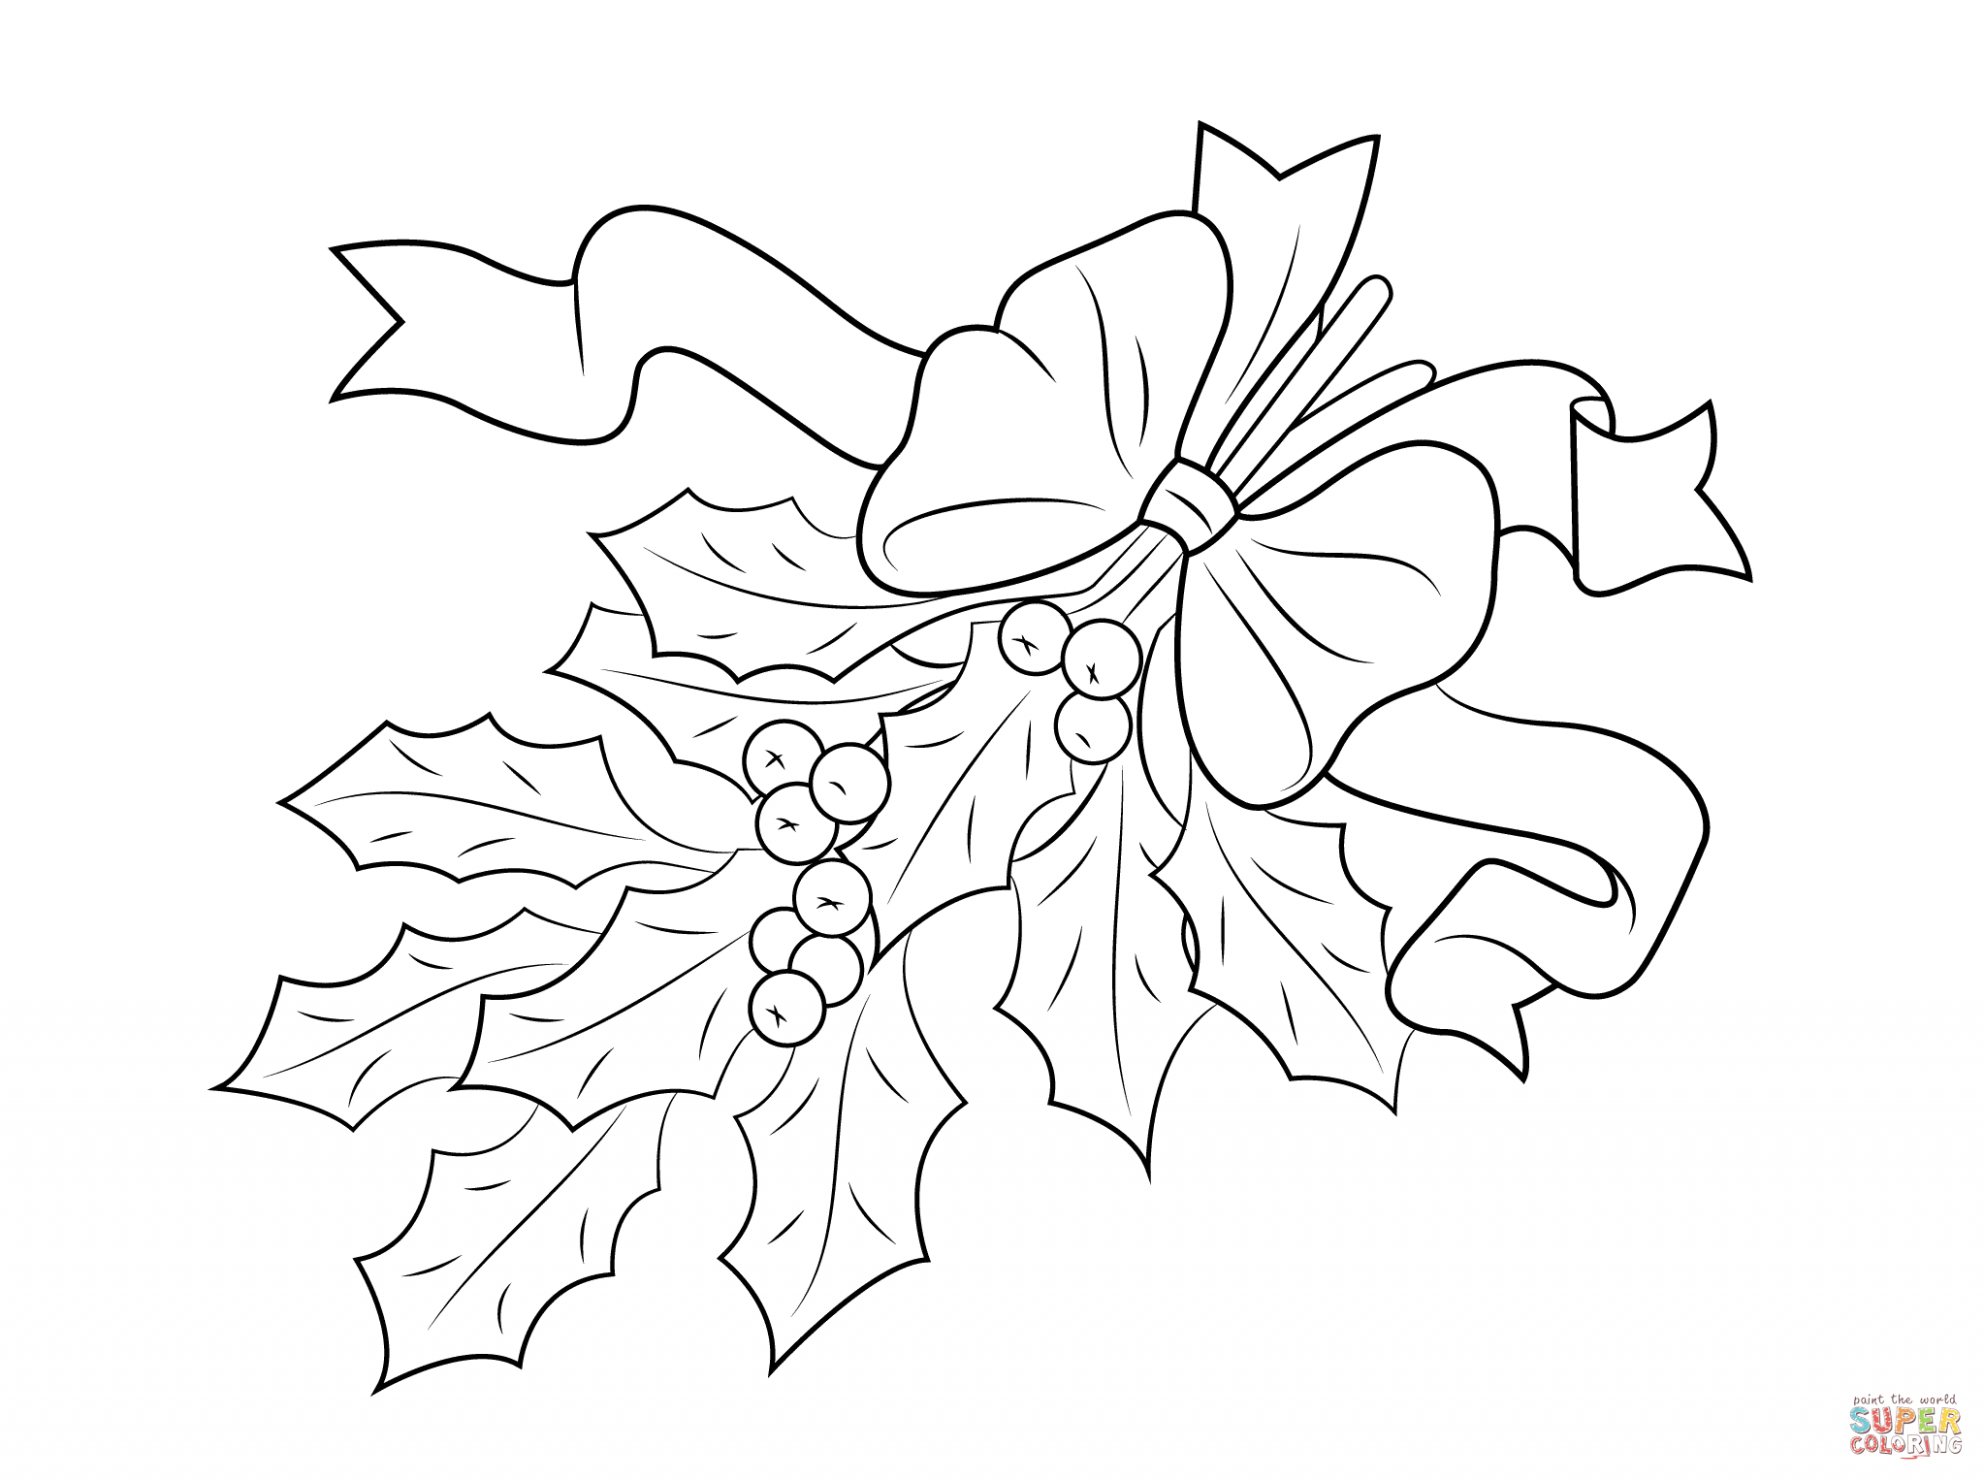 Christmas Holly With Bow Coloring Page | Free Printable Coloring ...